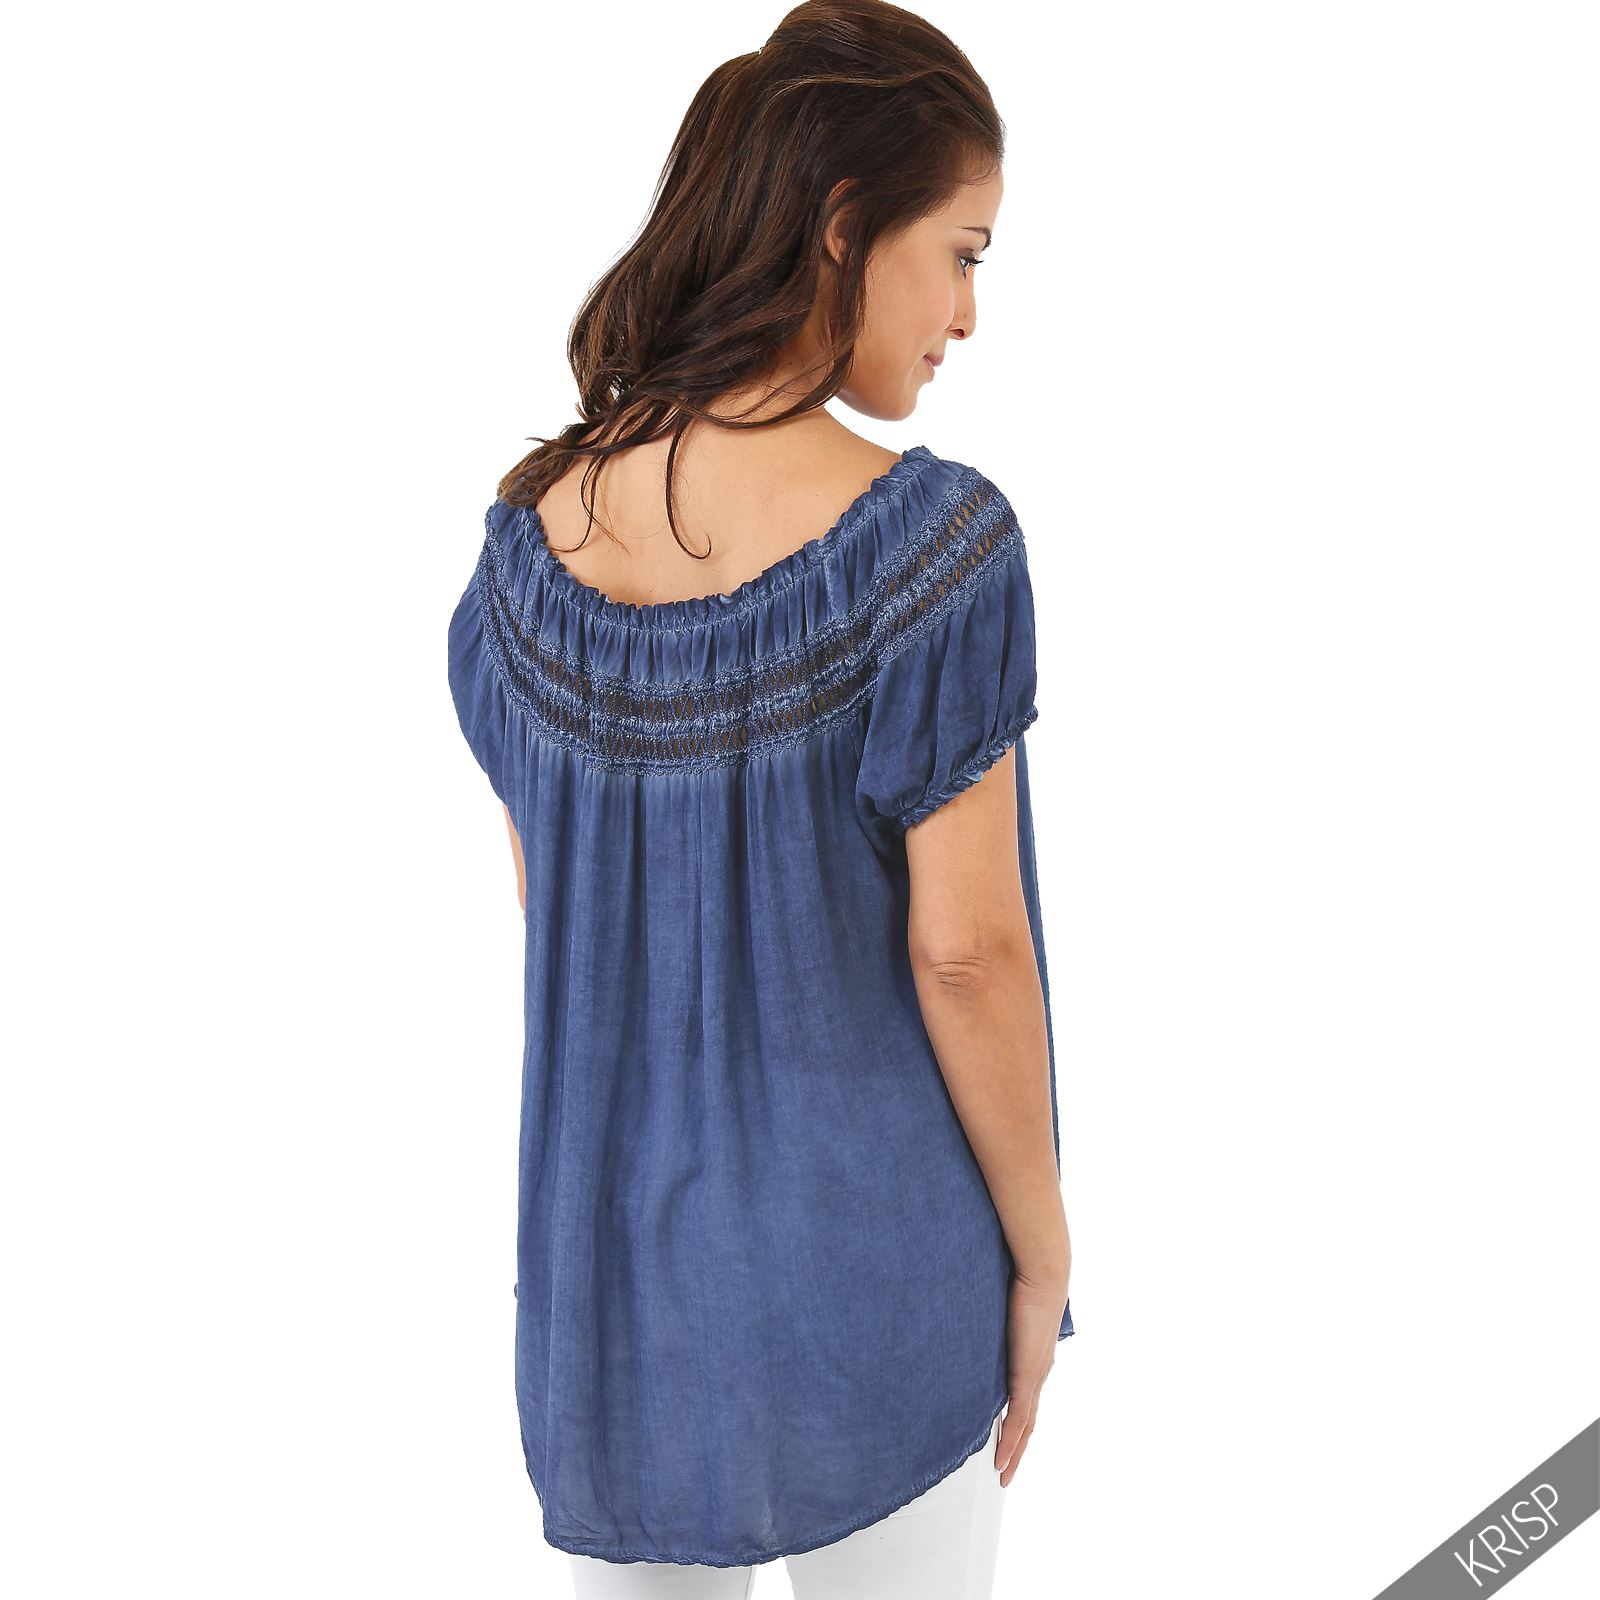 Find great deals on eBay for Womens Gypsy Tops in Tops and Blouses for All Women. Shop with confidence.